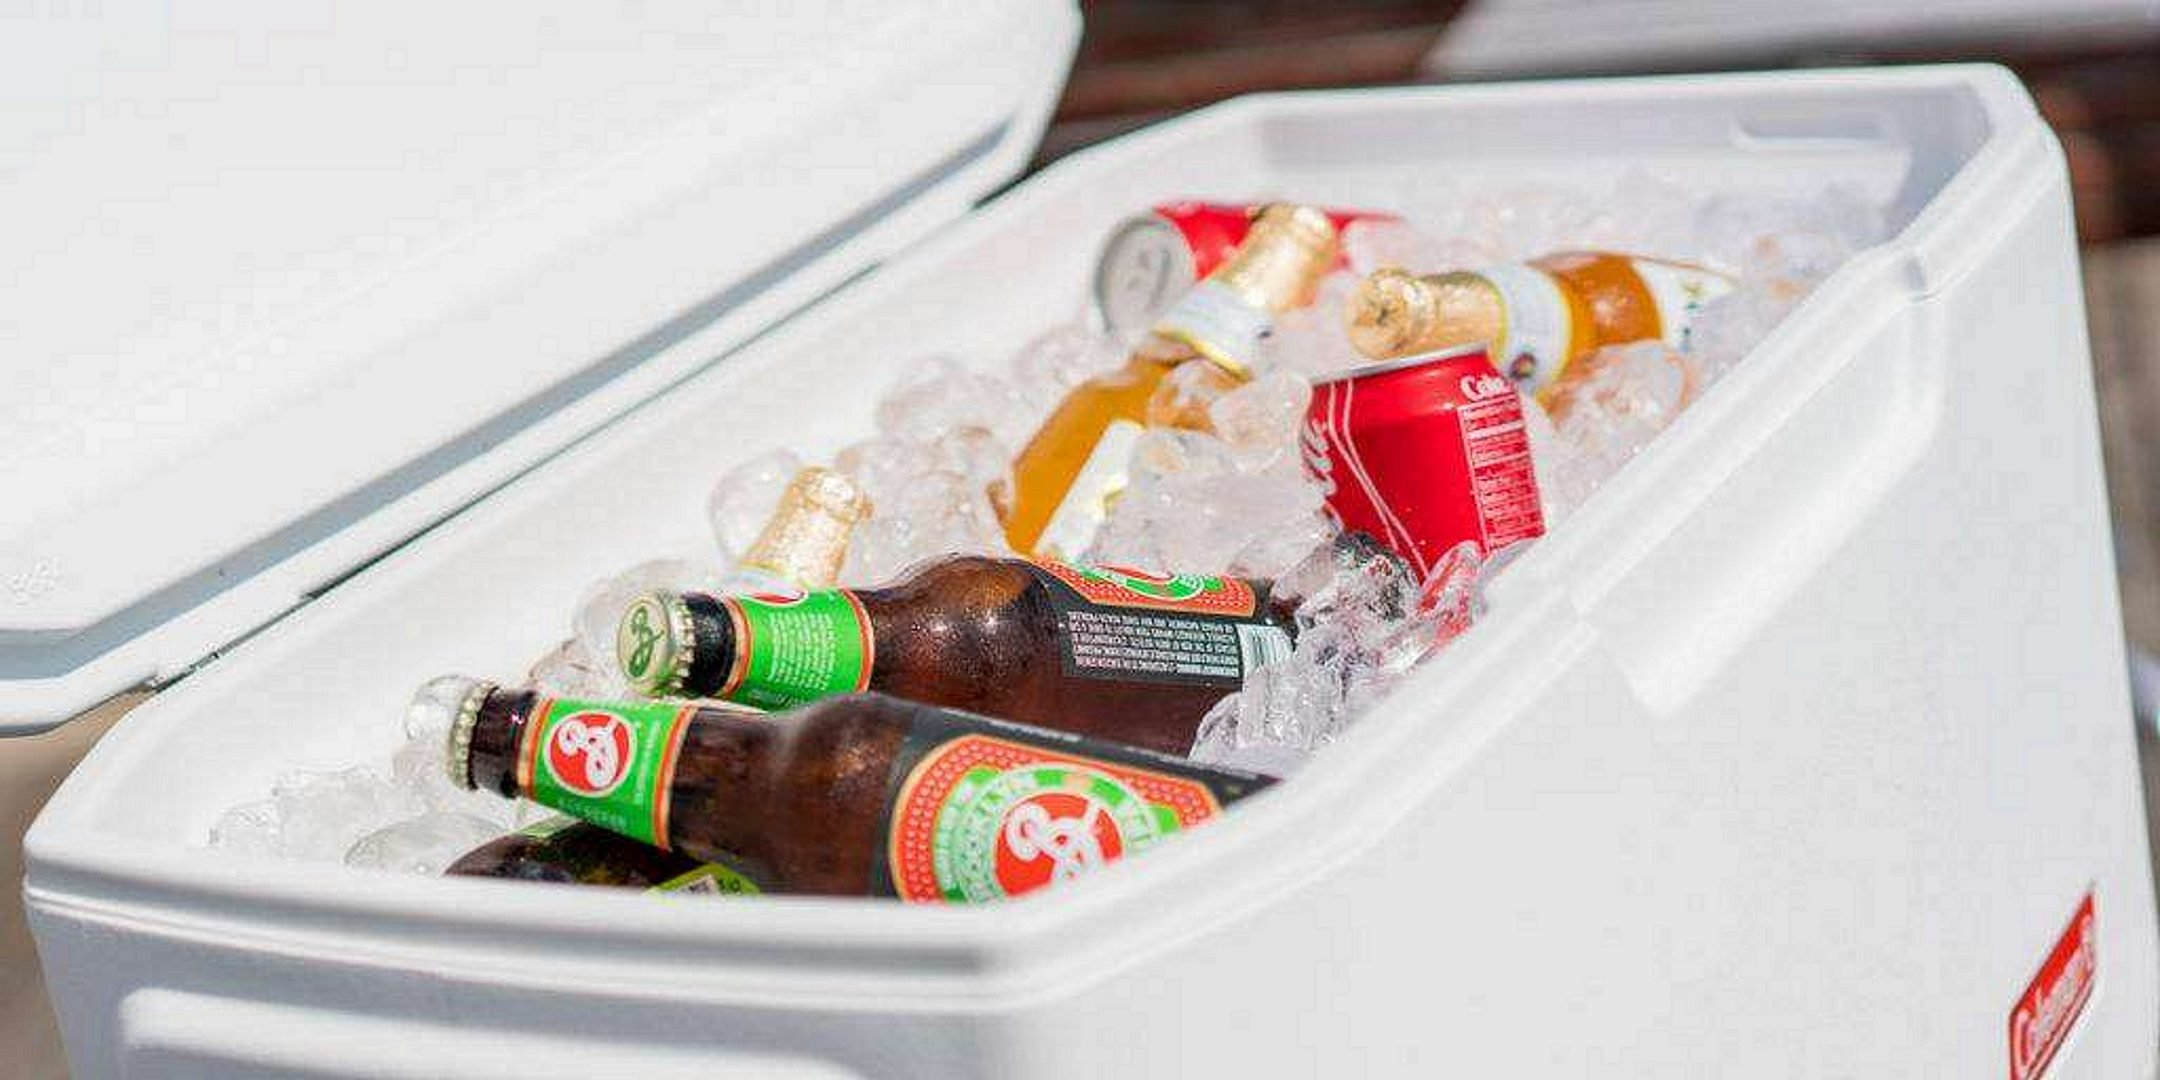 Coleman Cooler With Ice and Drinks